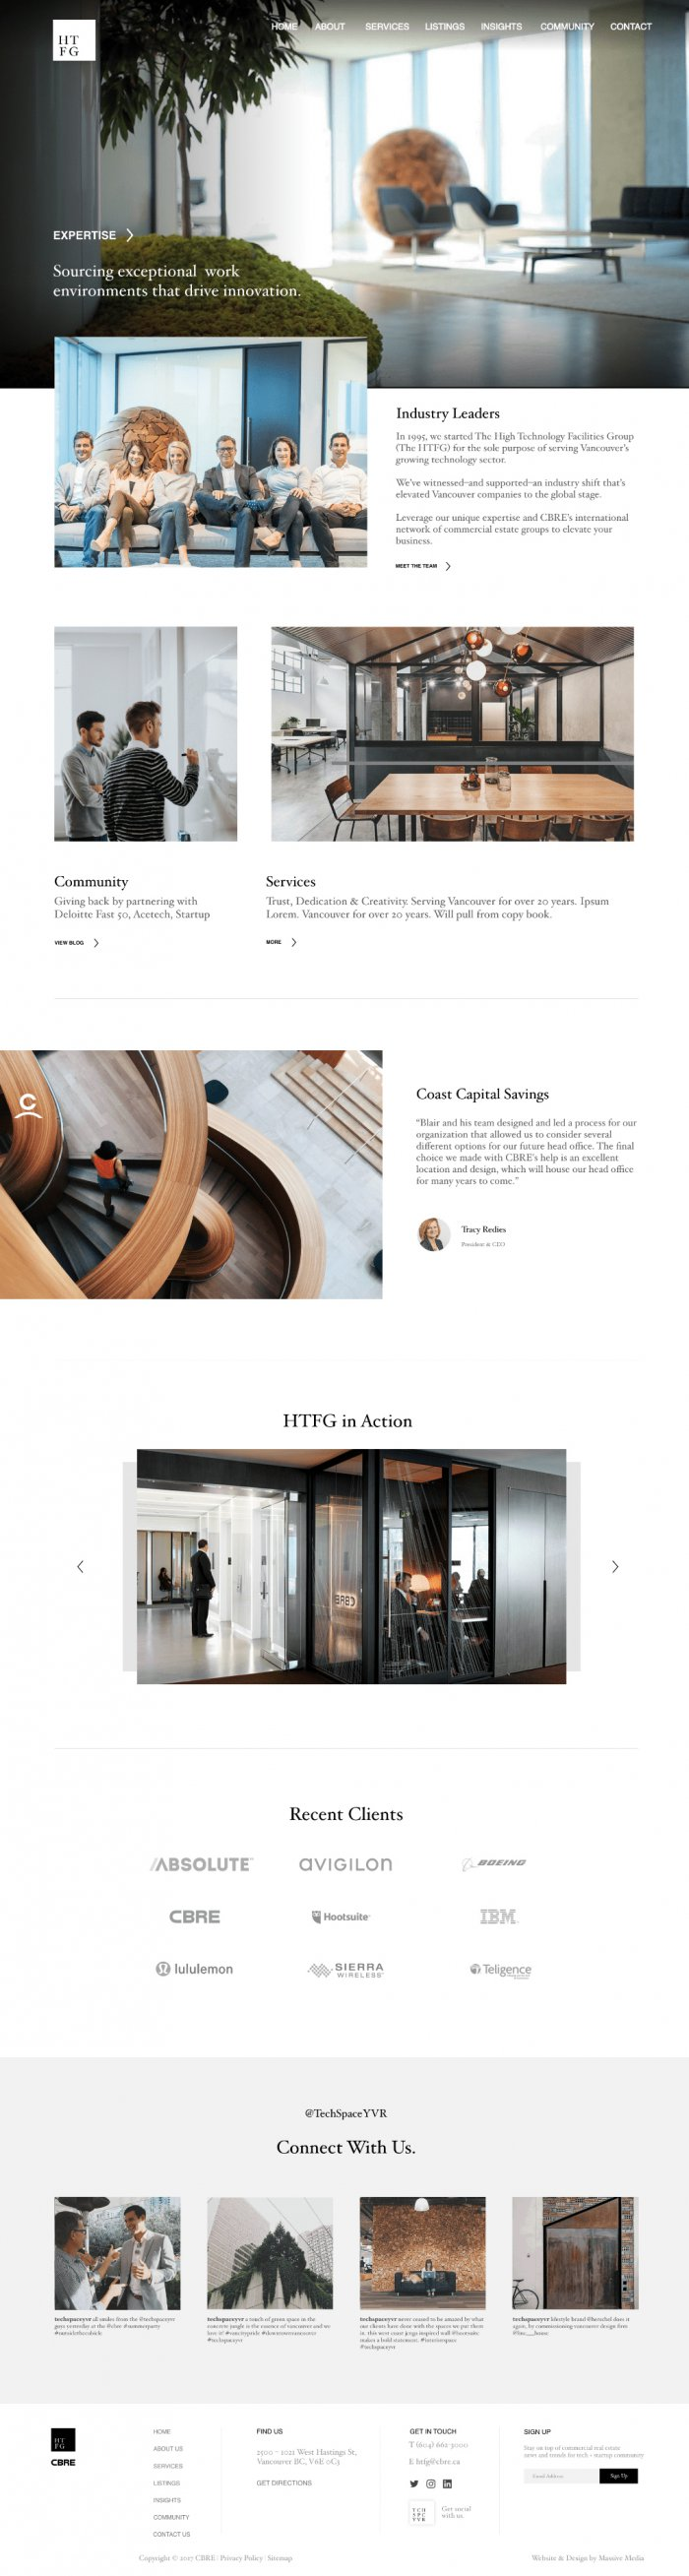 Website Design example from a real estate project